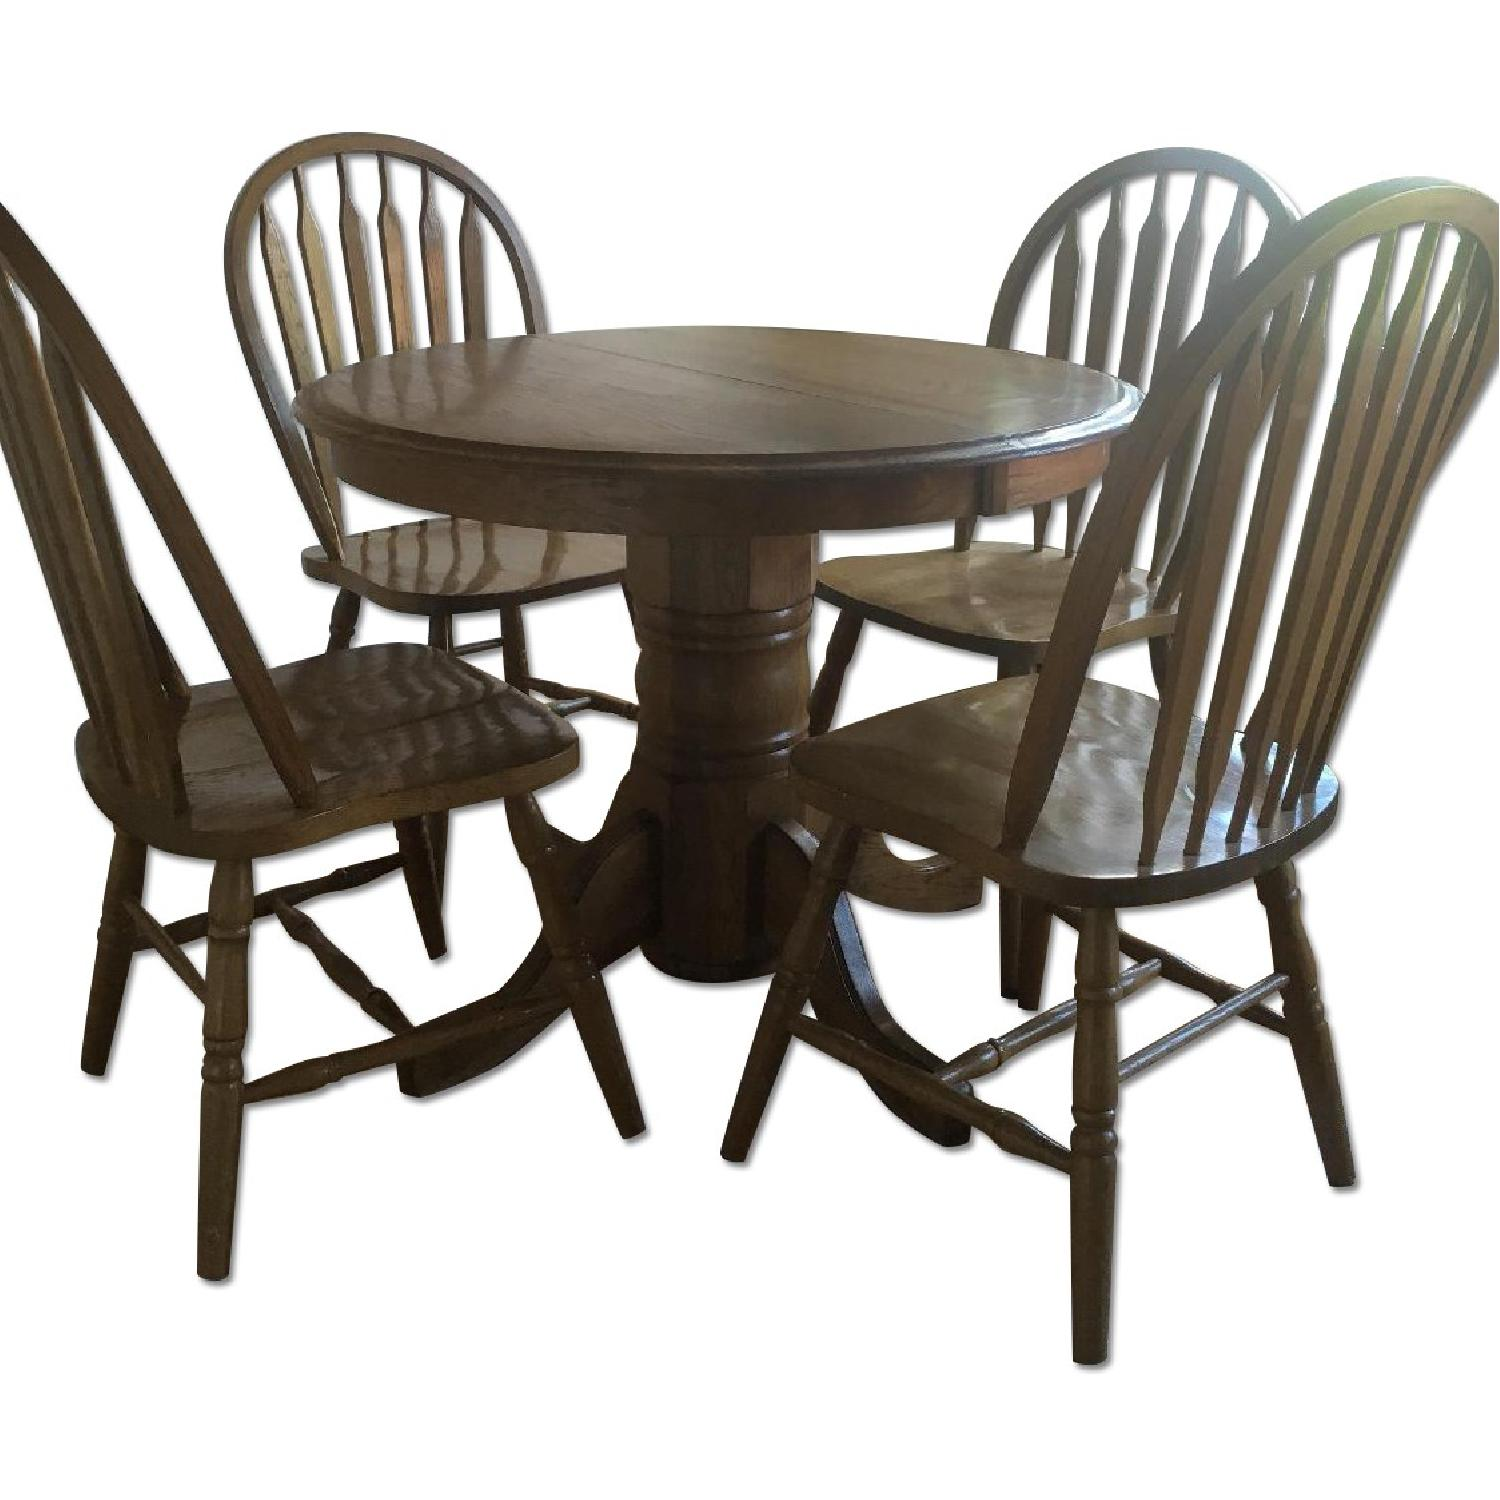 Oak Expandable Dining Table w/ 4 Chairs - image-0